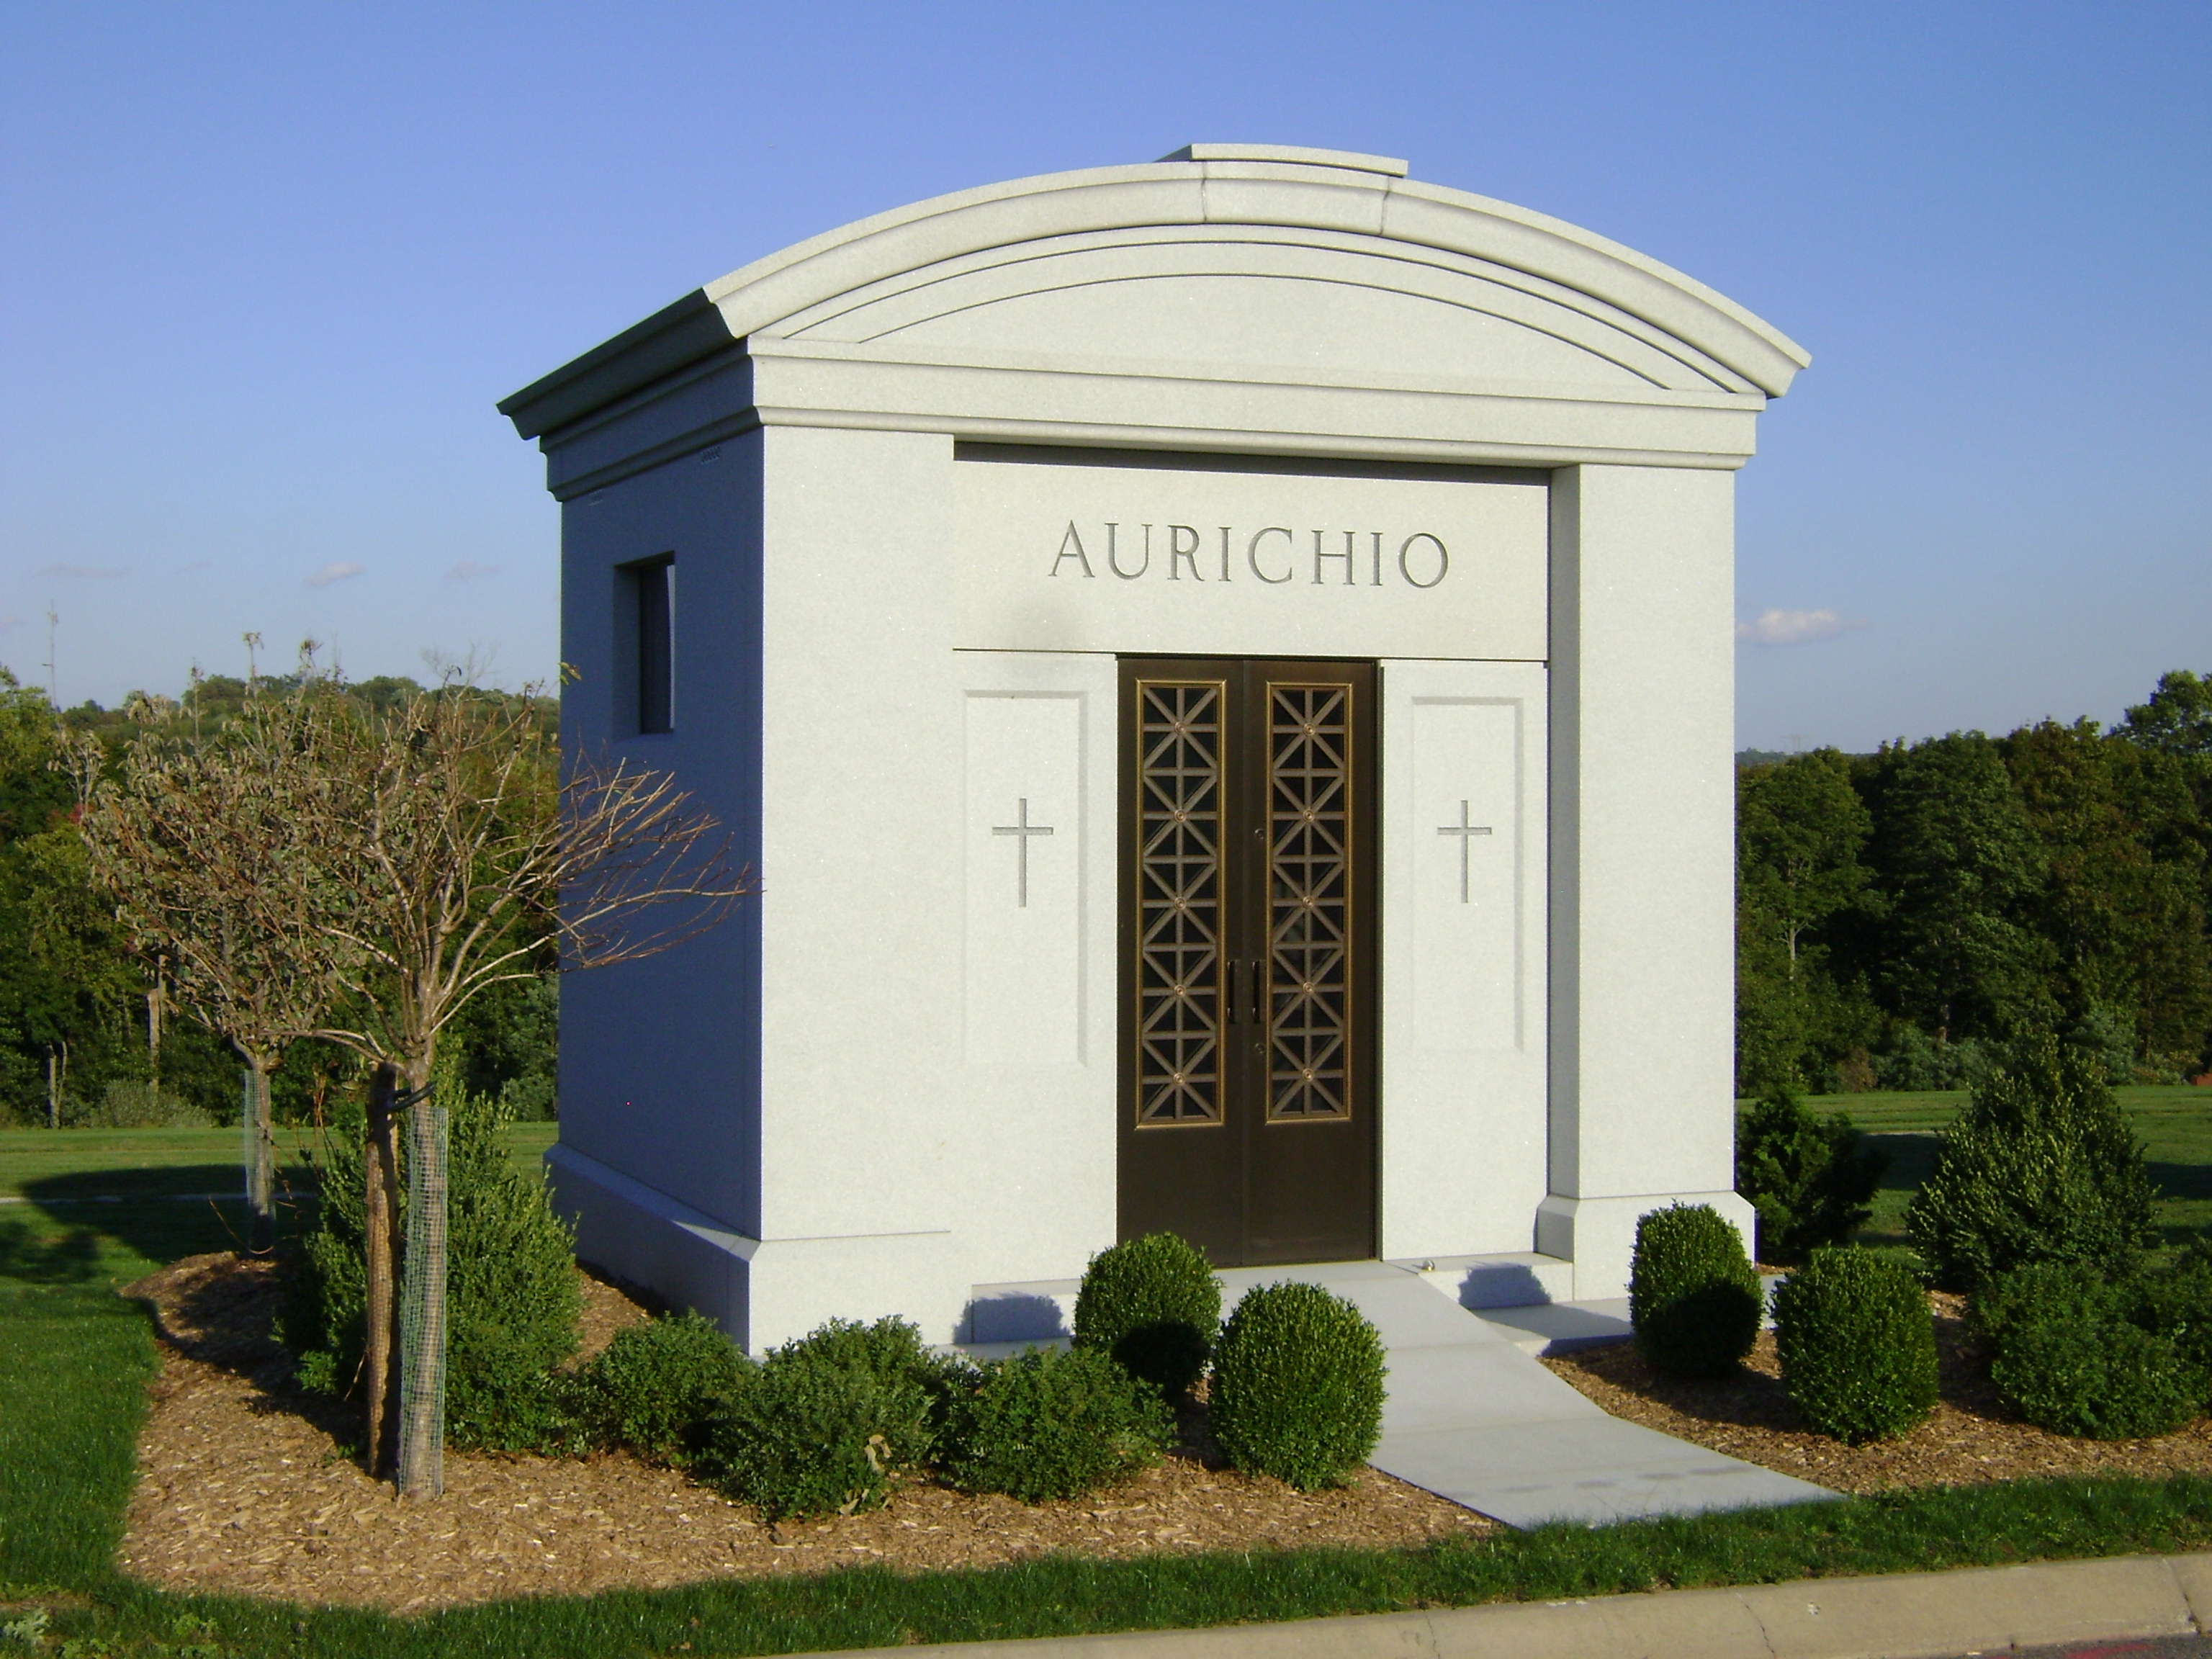 Polchinski Memorials Hawthorne NY- Featured Memorials - Aurichio featured memorials